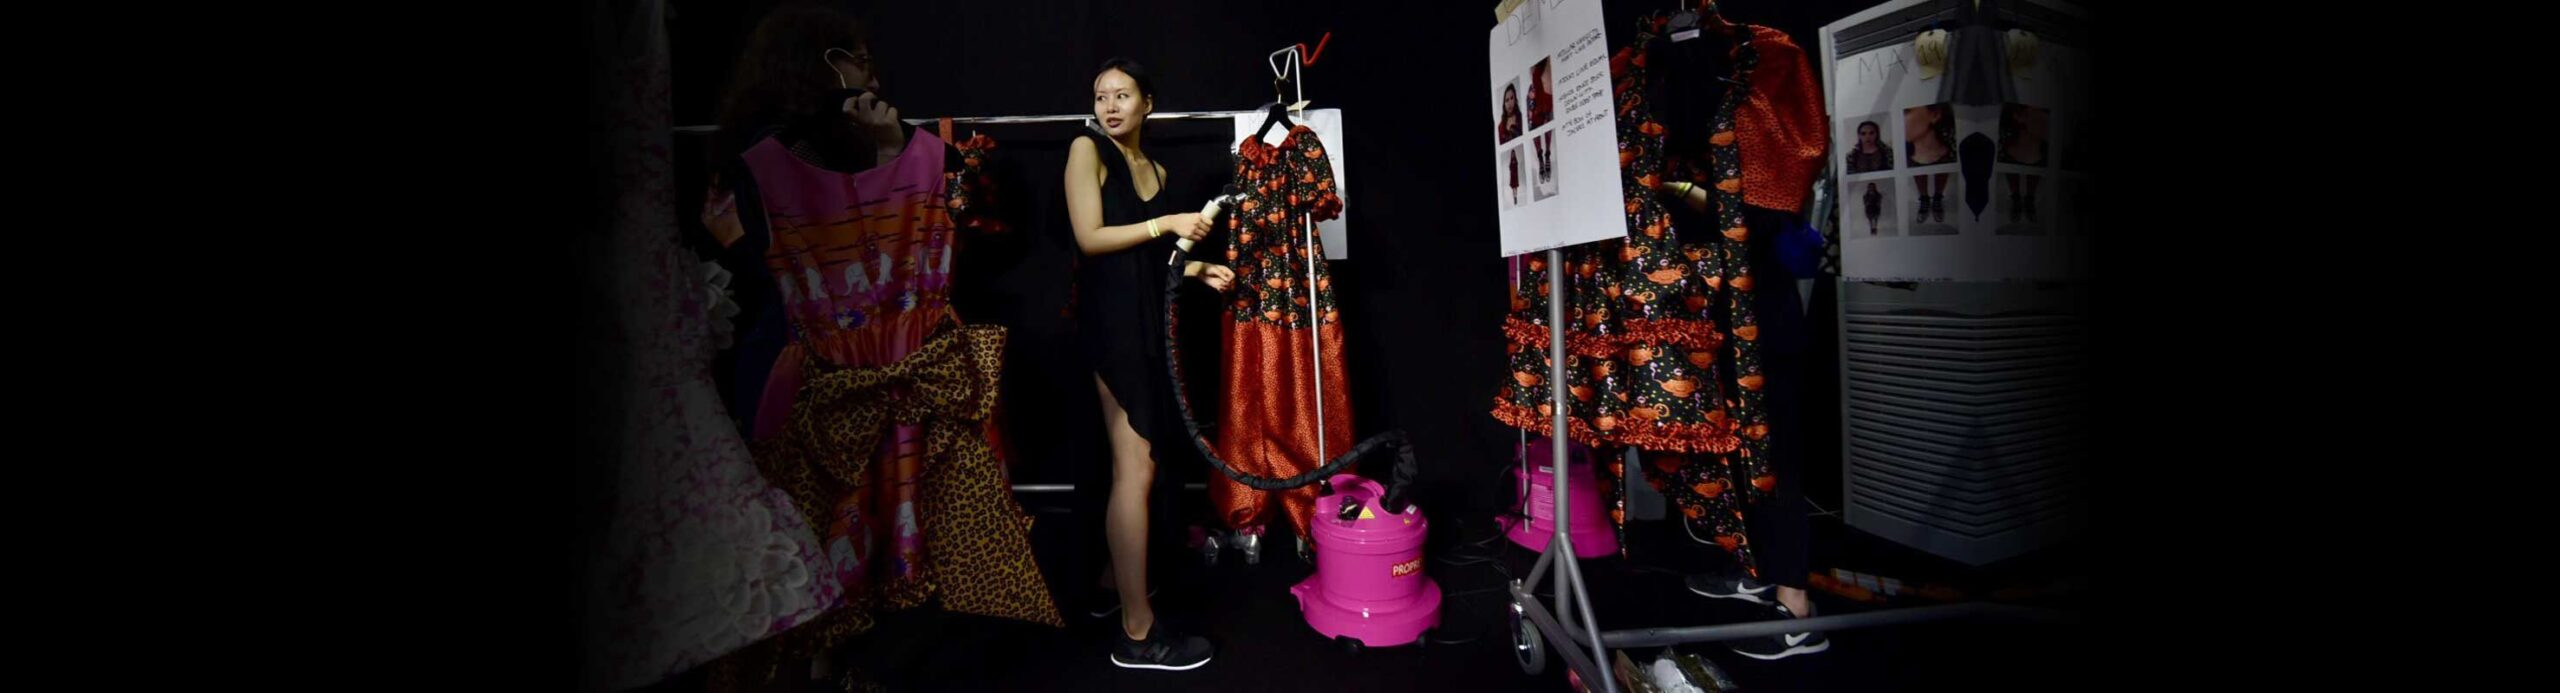 Lady steams with Pink PRO580P steamer backstage at London Fashion Week